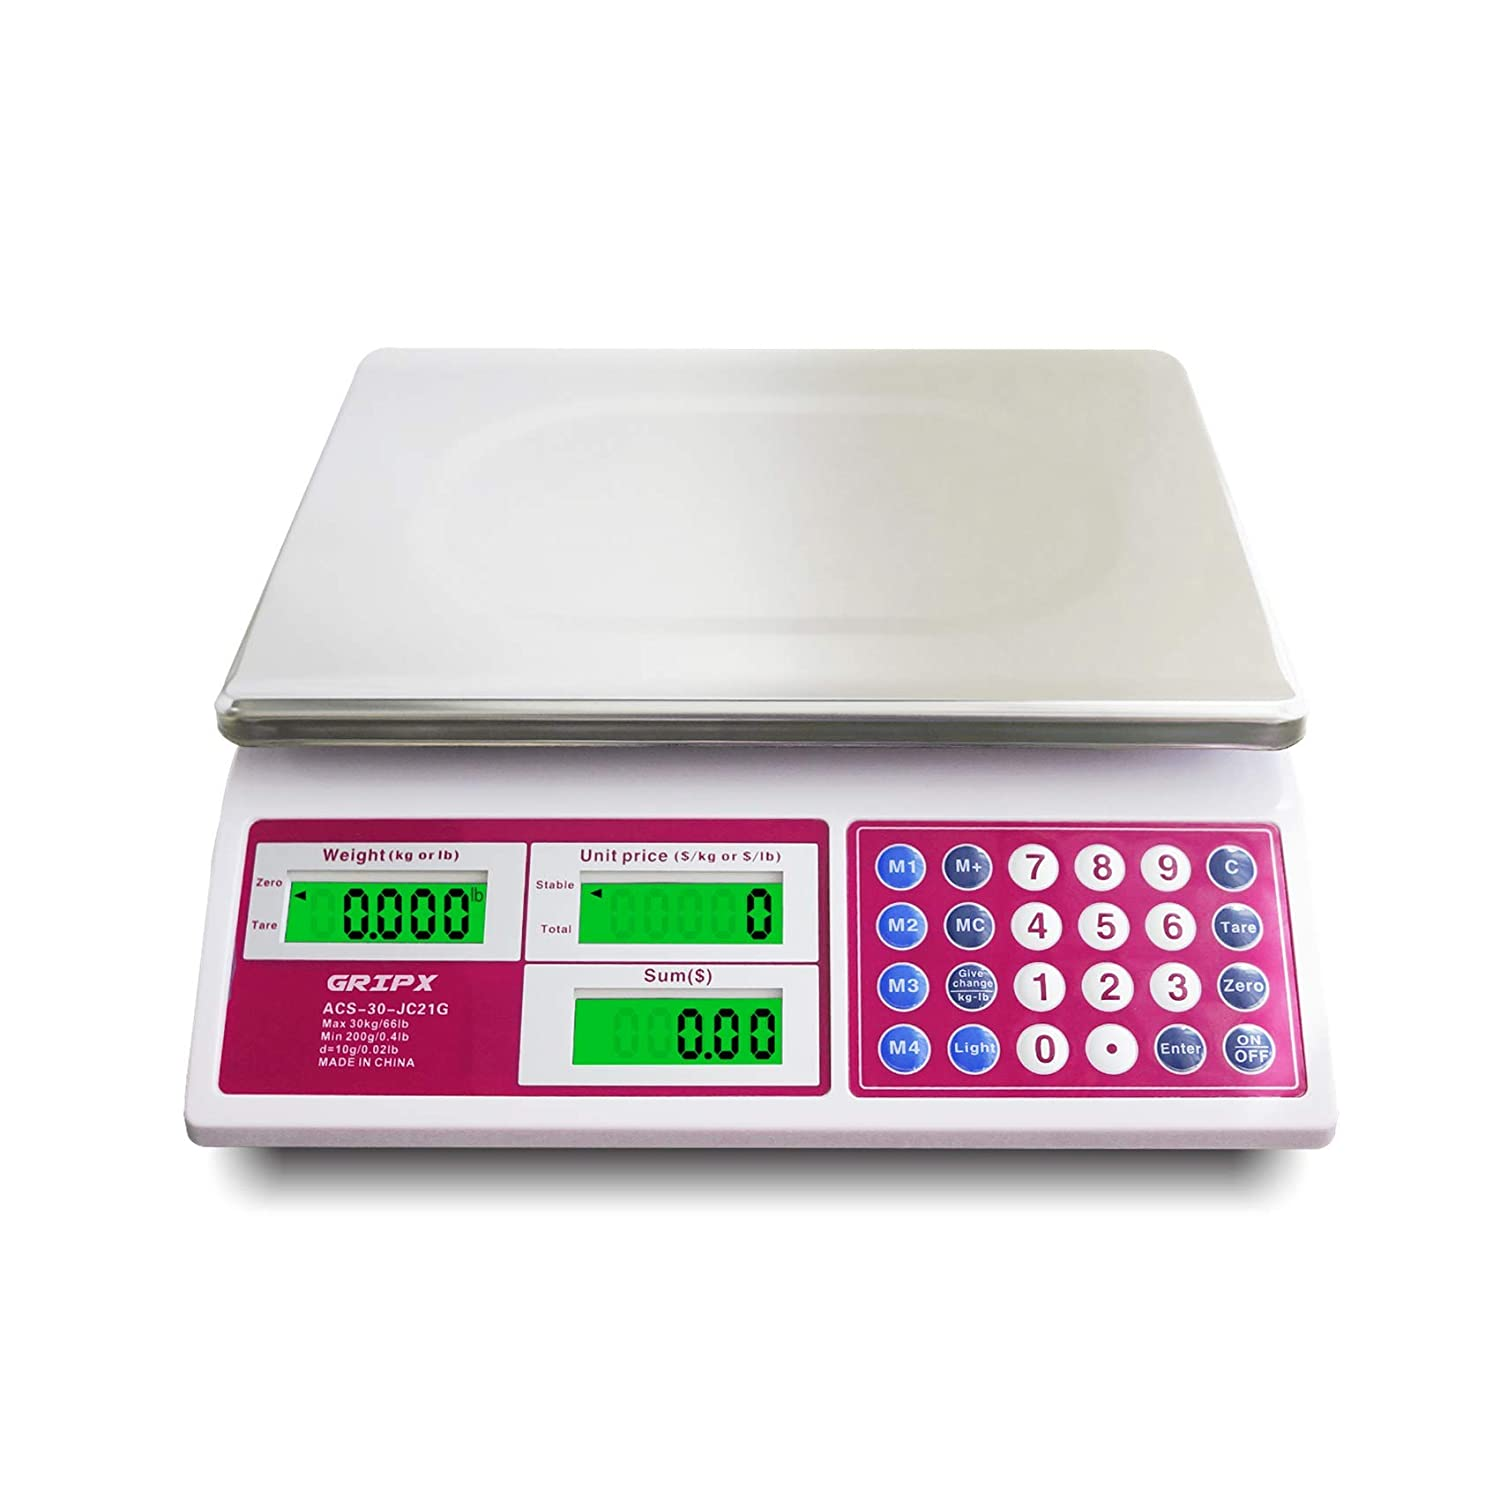 Digital Commercial Price Scale 66 lbs for Food Meat Fruit Produce with Green Backlight LCD Display Stainless Steel Platform Battery Included Not for Trade